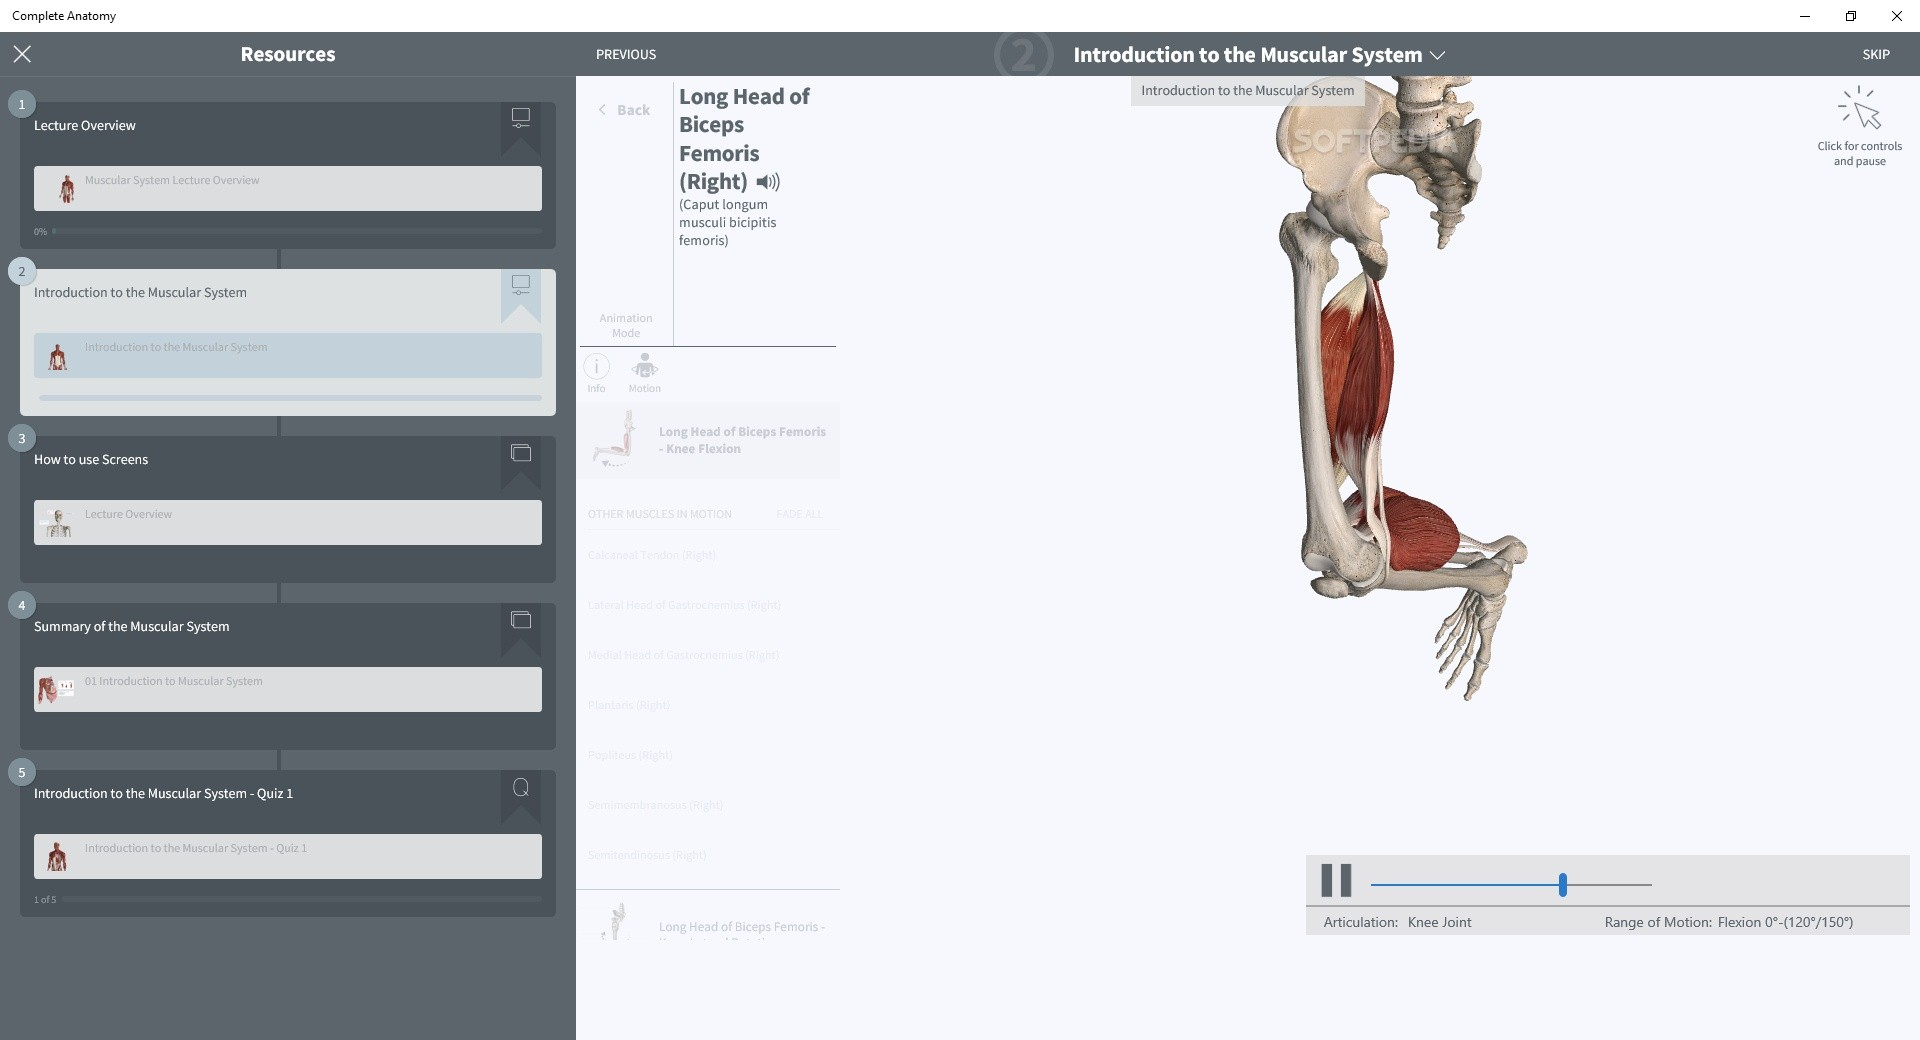 Download Complete Anatomy 2019 5 0 9 0